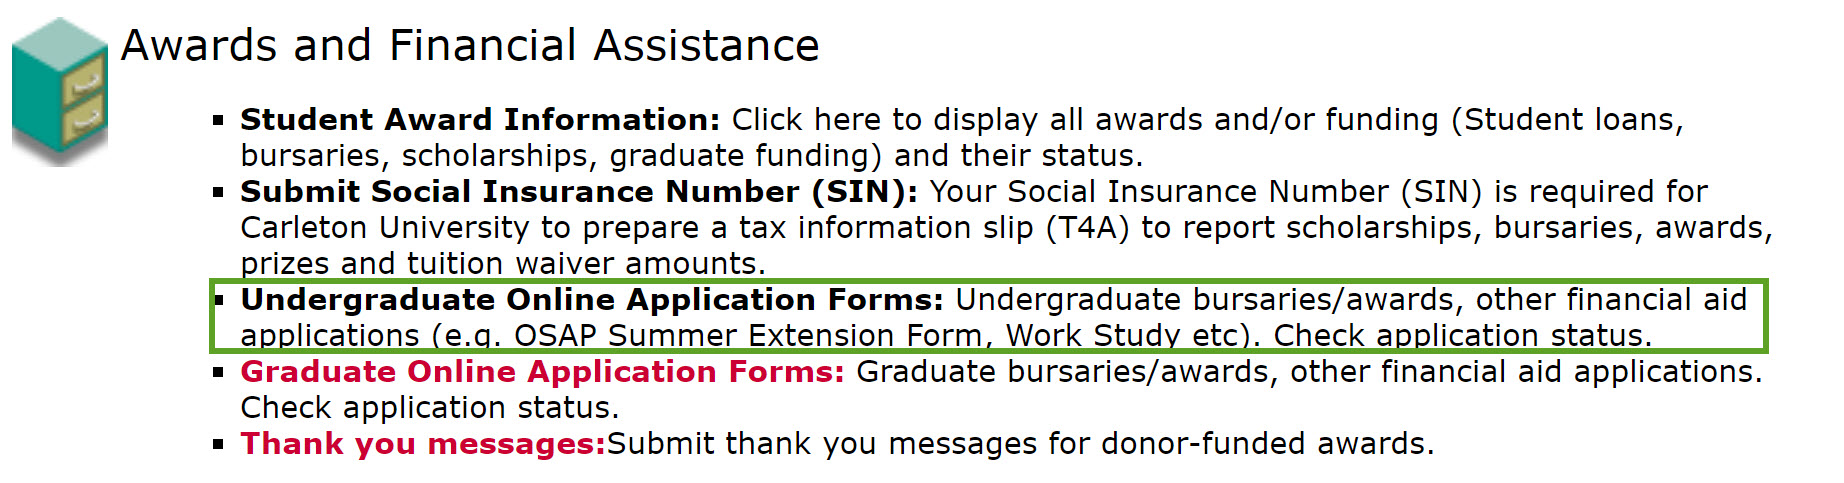 "Screenshot of Carleton Central homepage showing where the Summer Extension Form can be found. Under the ""Awards and Financial Assistance"" tab, select ""Undergraduate Online Application Forms"""